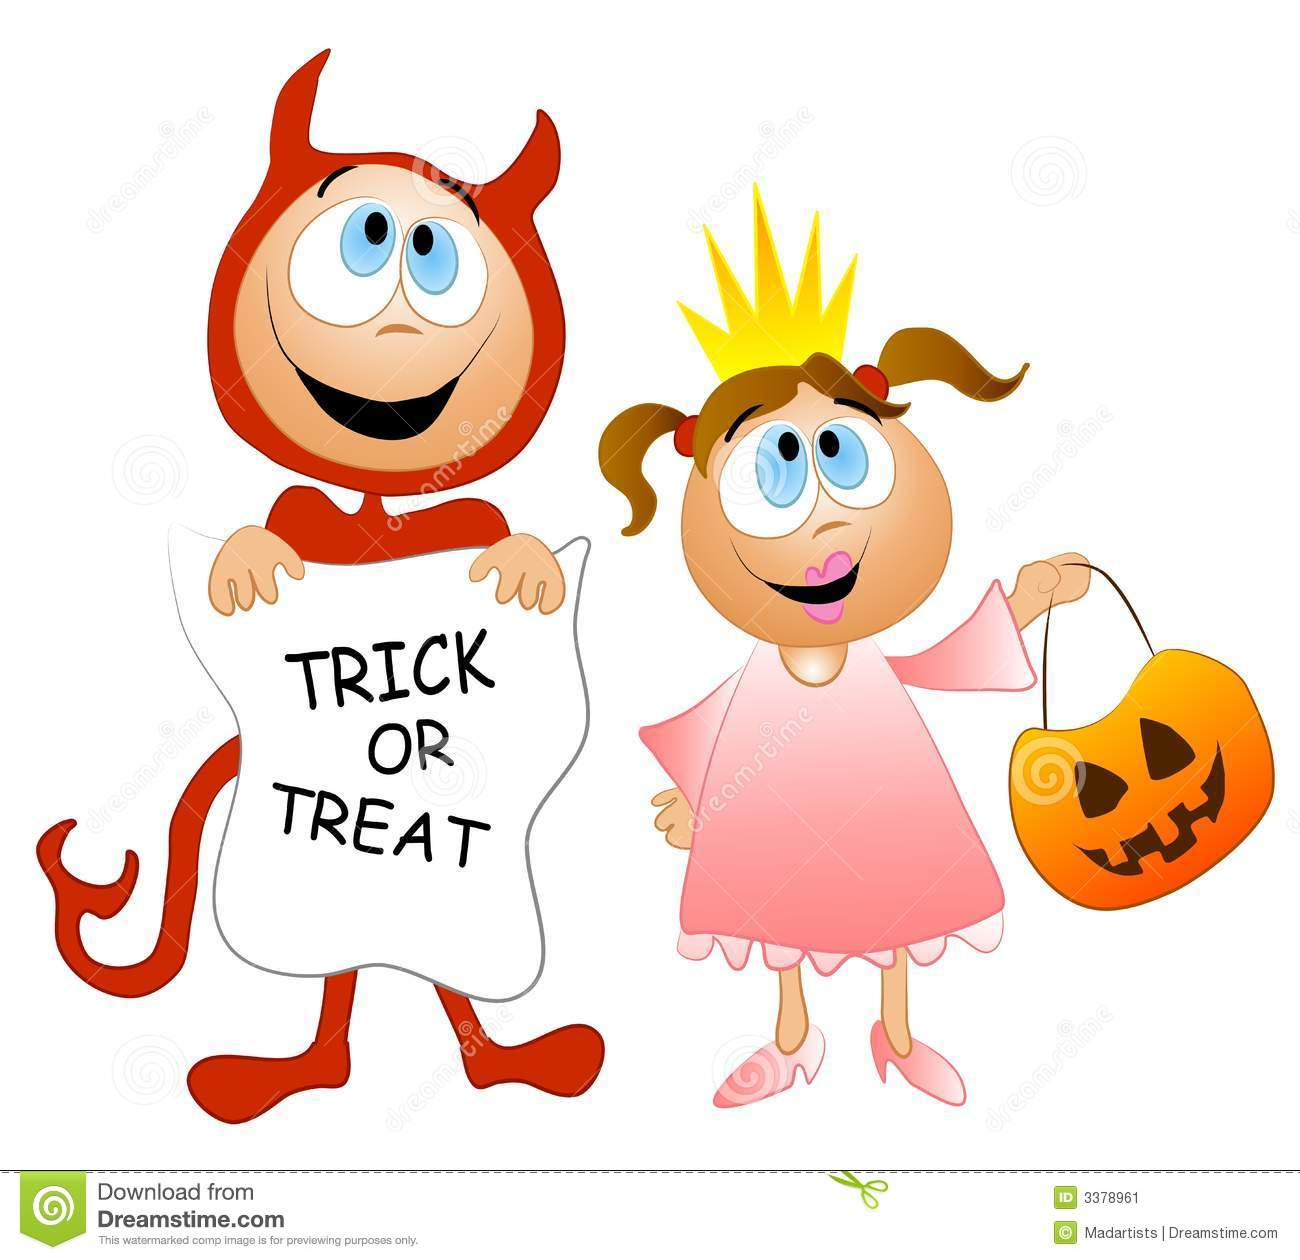 Trick or Treat Clip Art